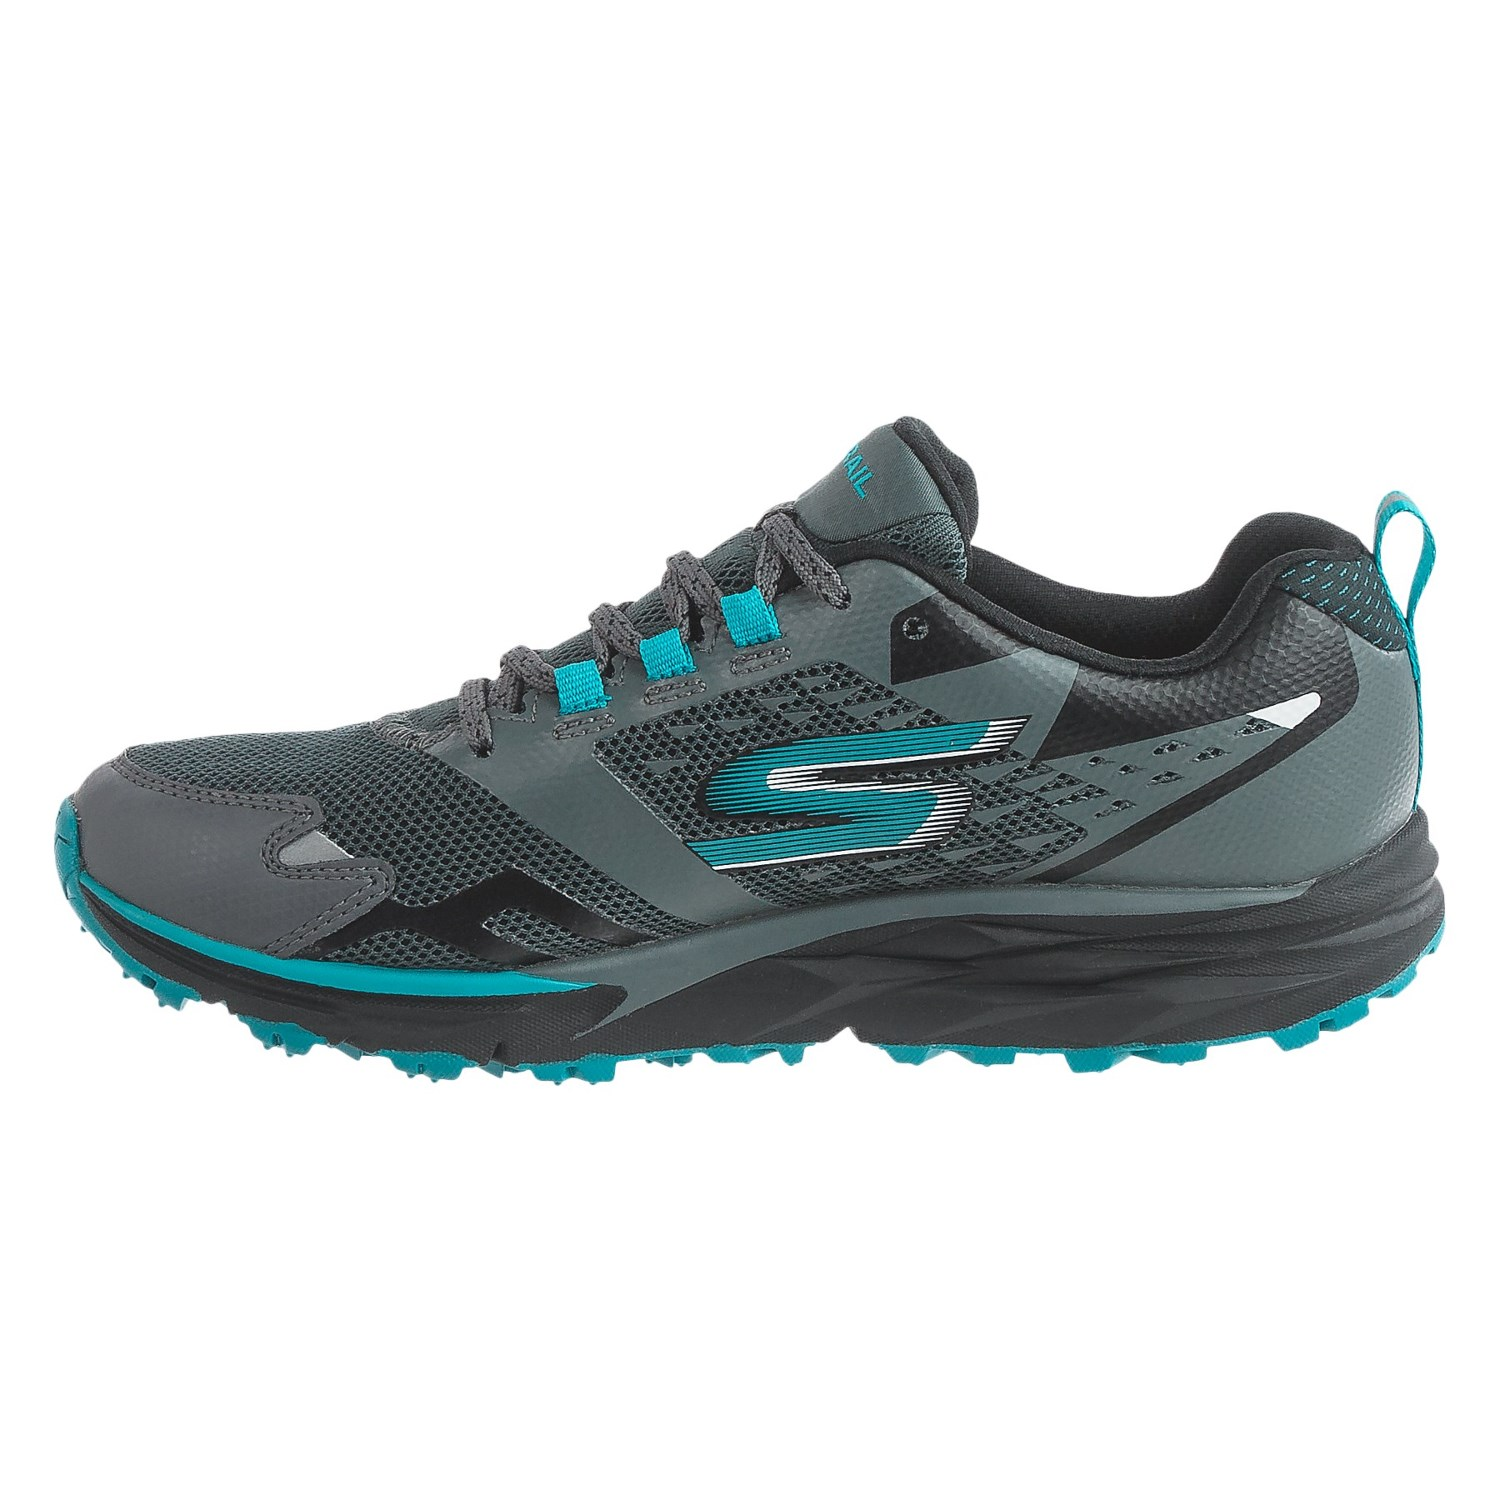 Skechers Hiking Shoes Review